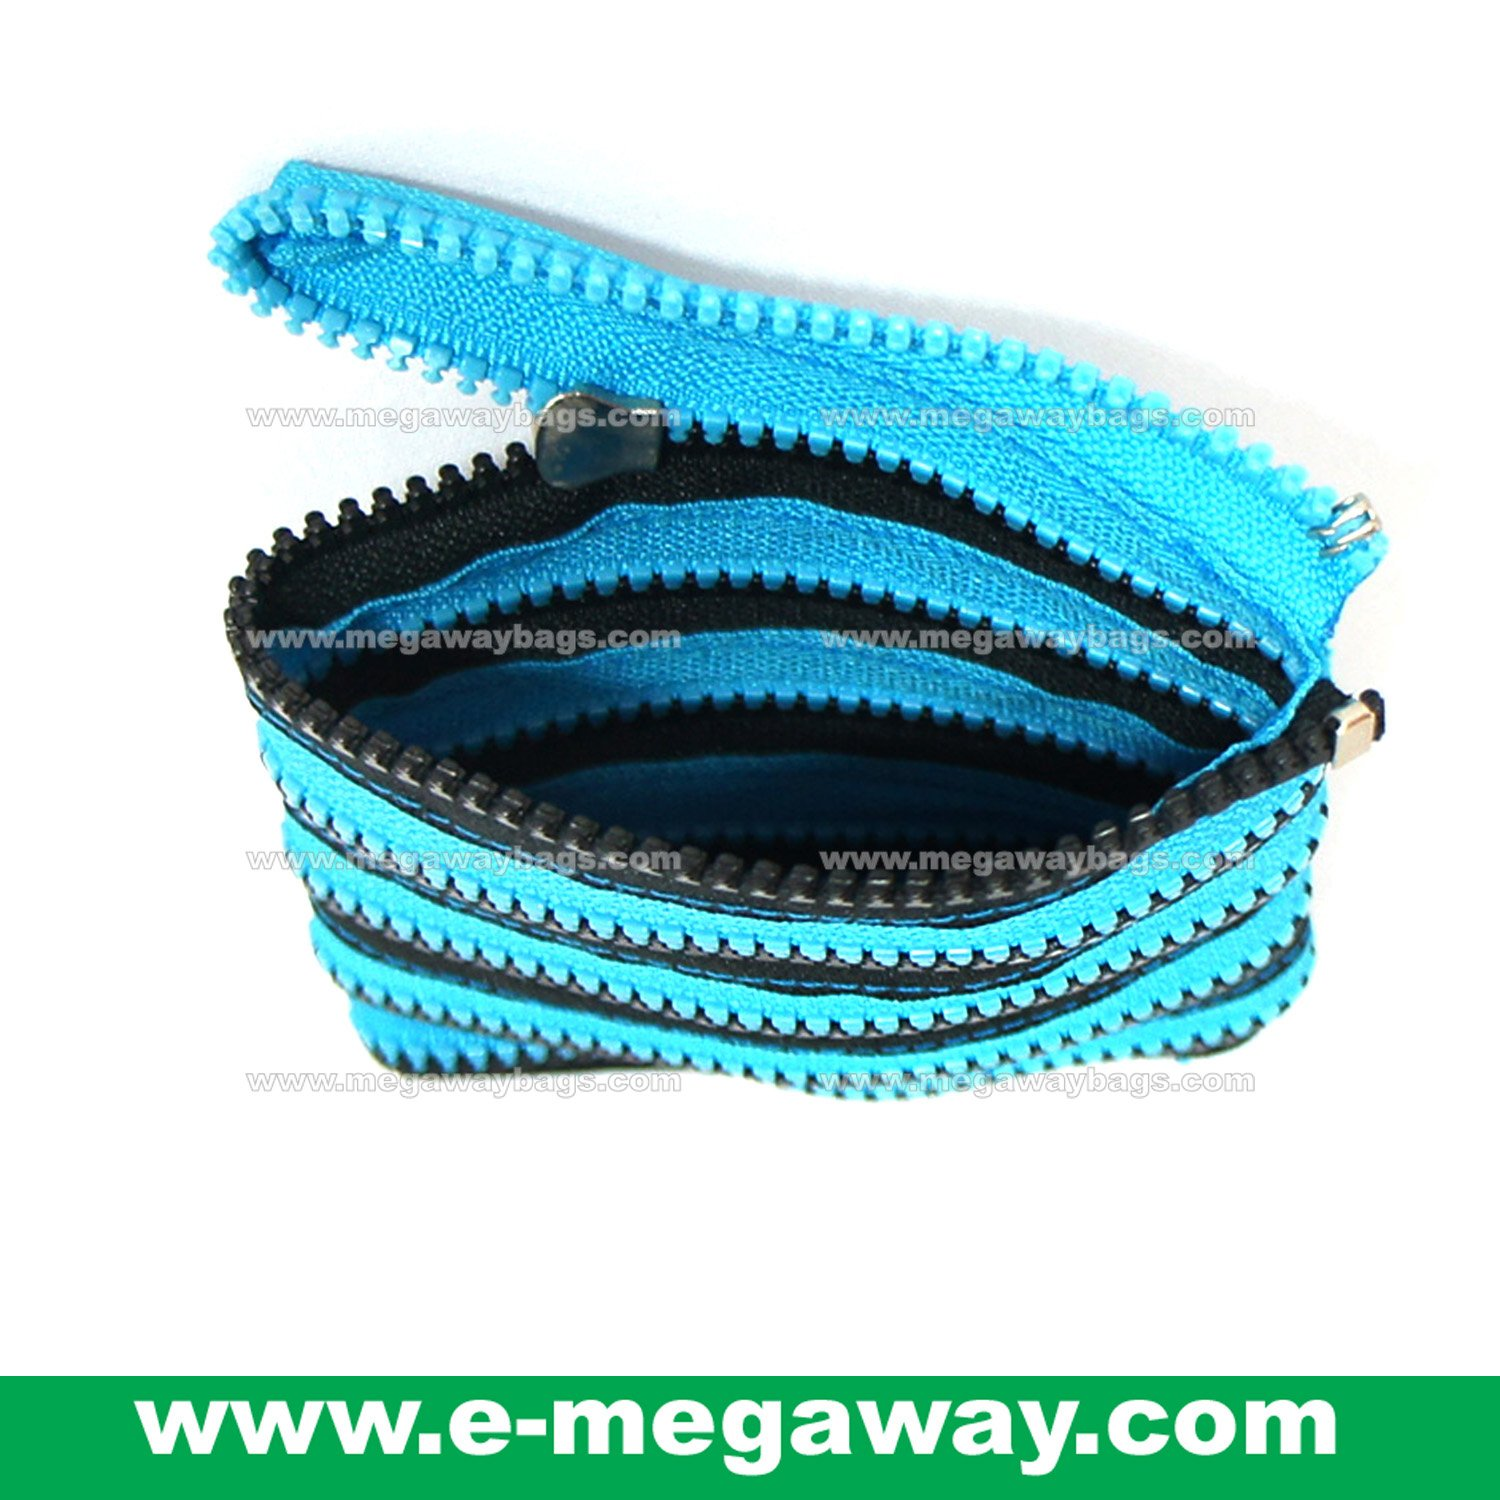 Continous Zippers Wallet Purse Amenity Bags Kits Sac Designer Crafts MegawayBags #CC-0763